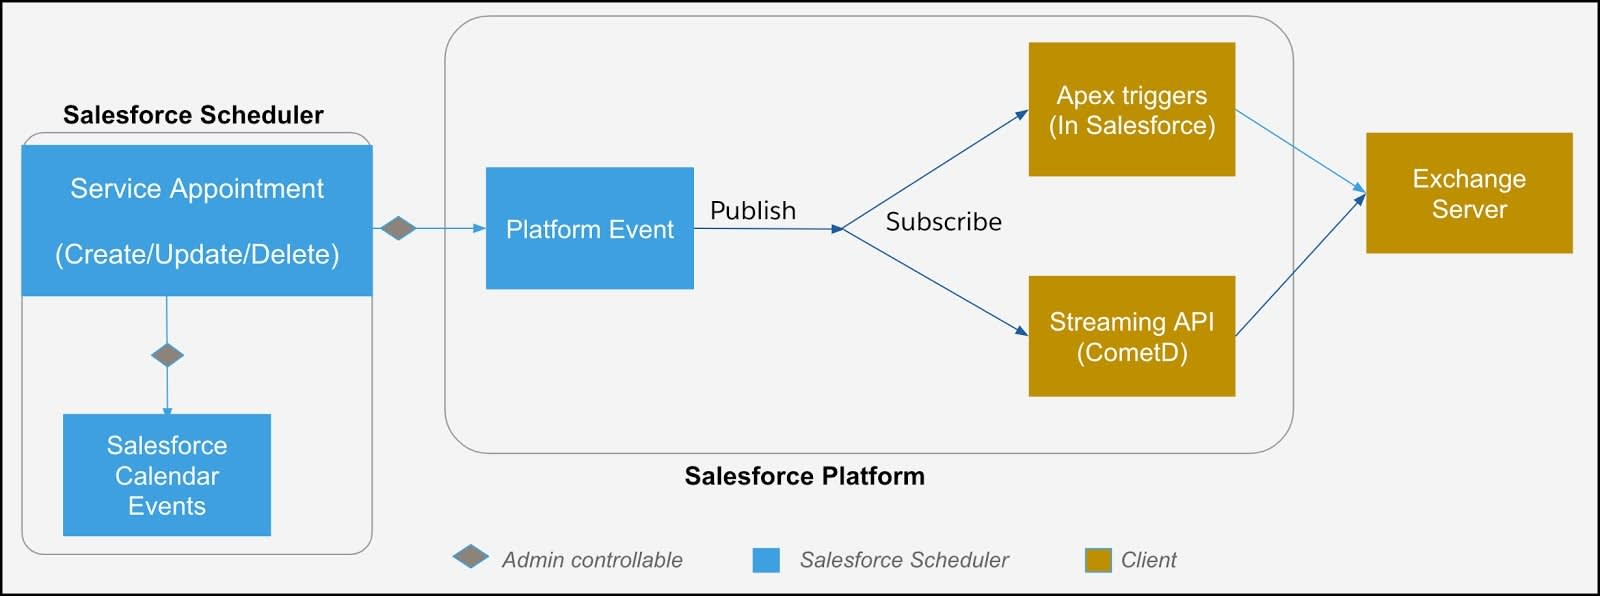 An illustration of the flow of data from Salesforce Scheduler to an external mail server through platform events.